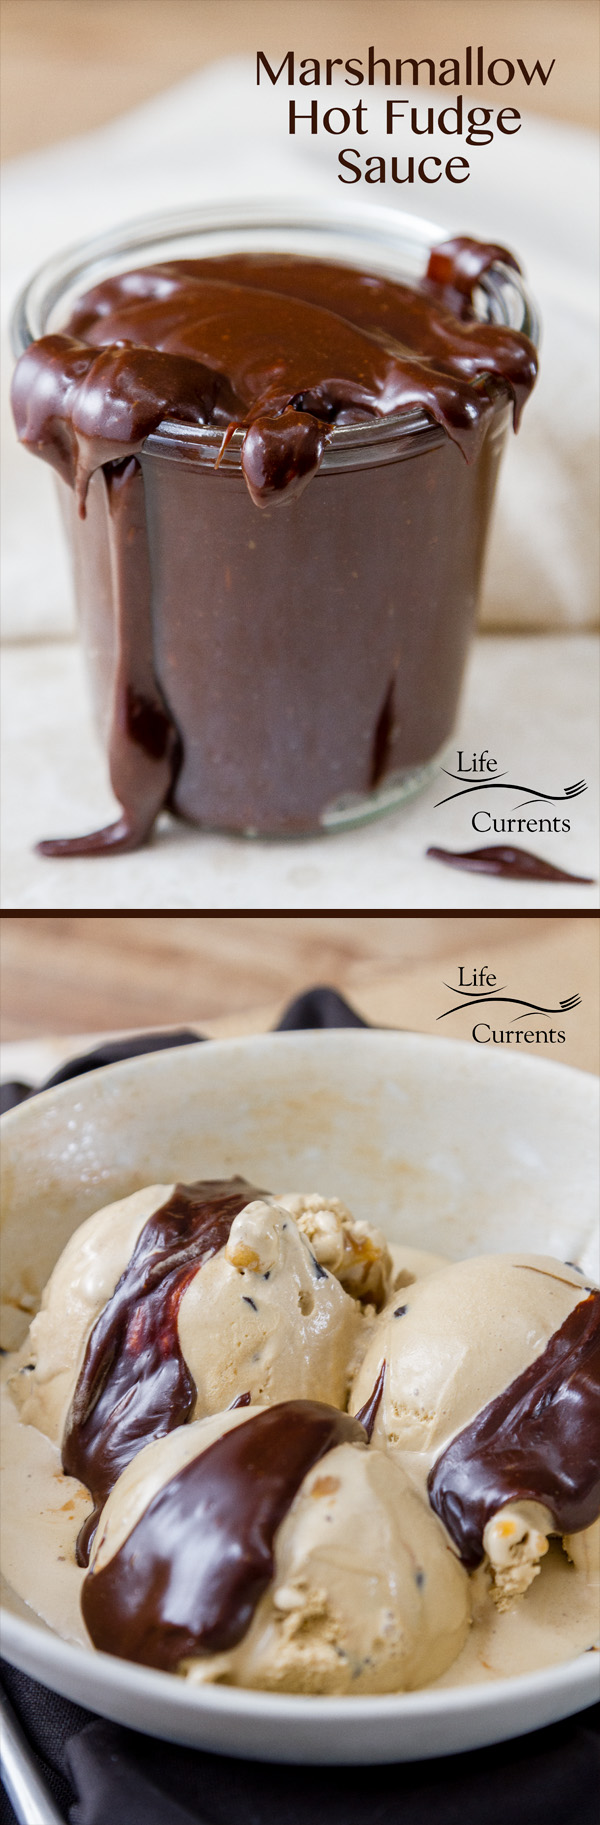 Hot Fudge collage for Pinterest with three images.